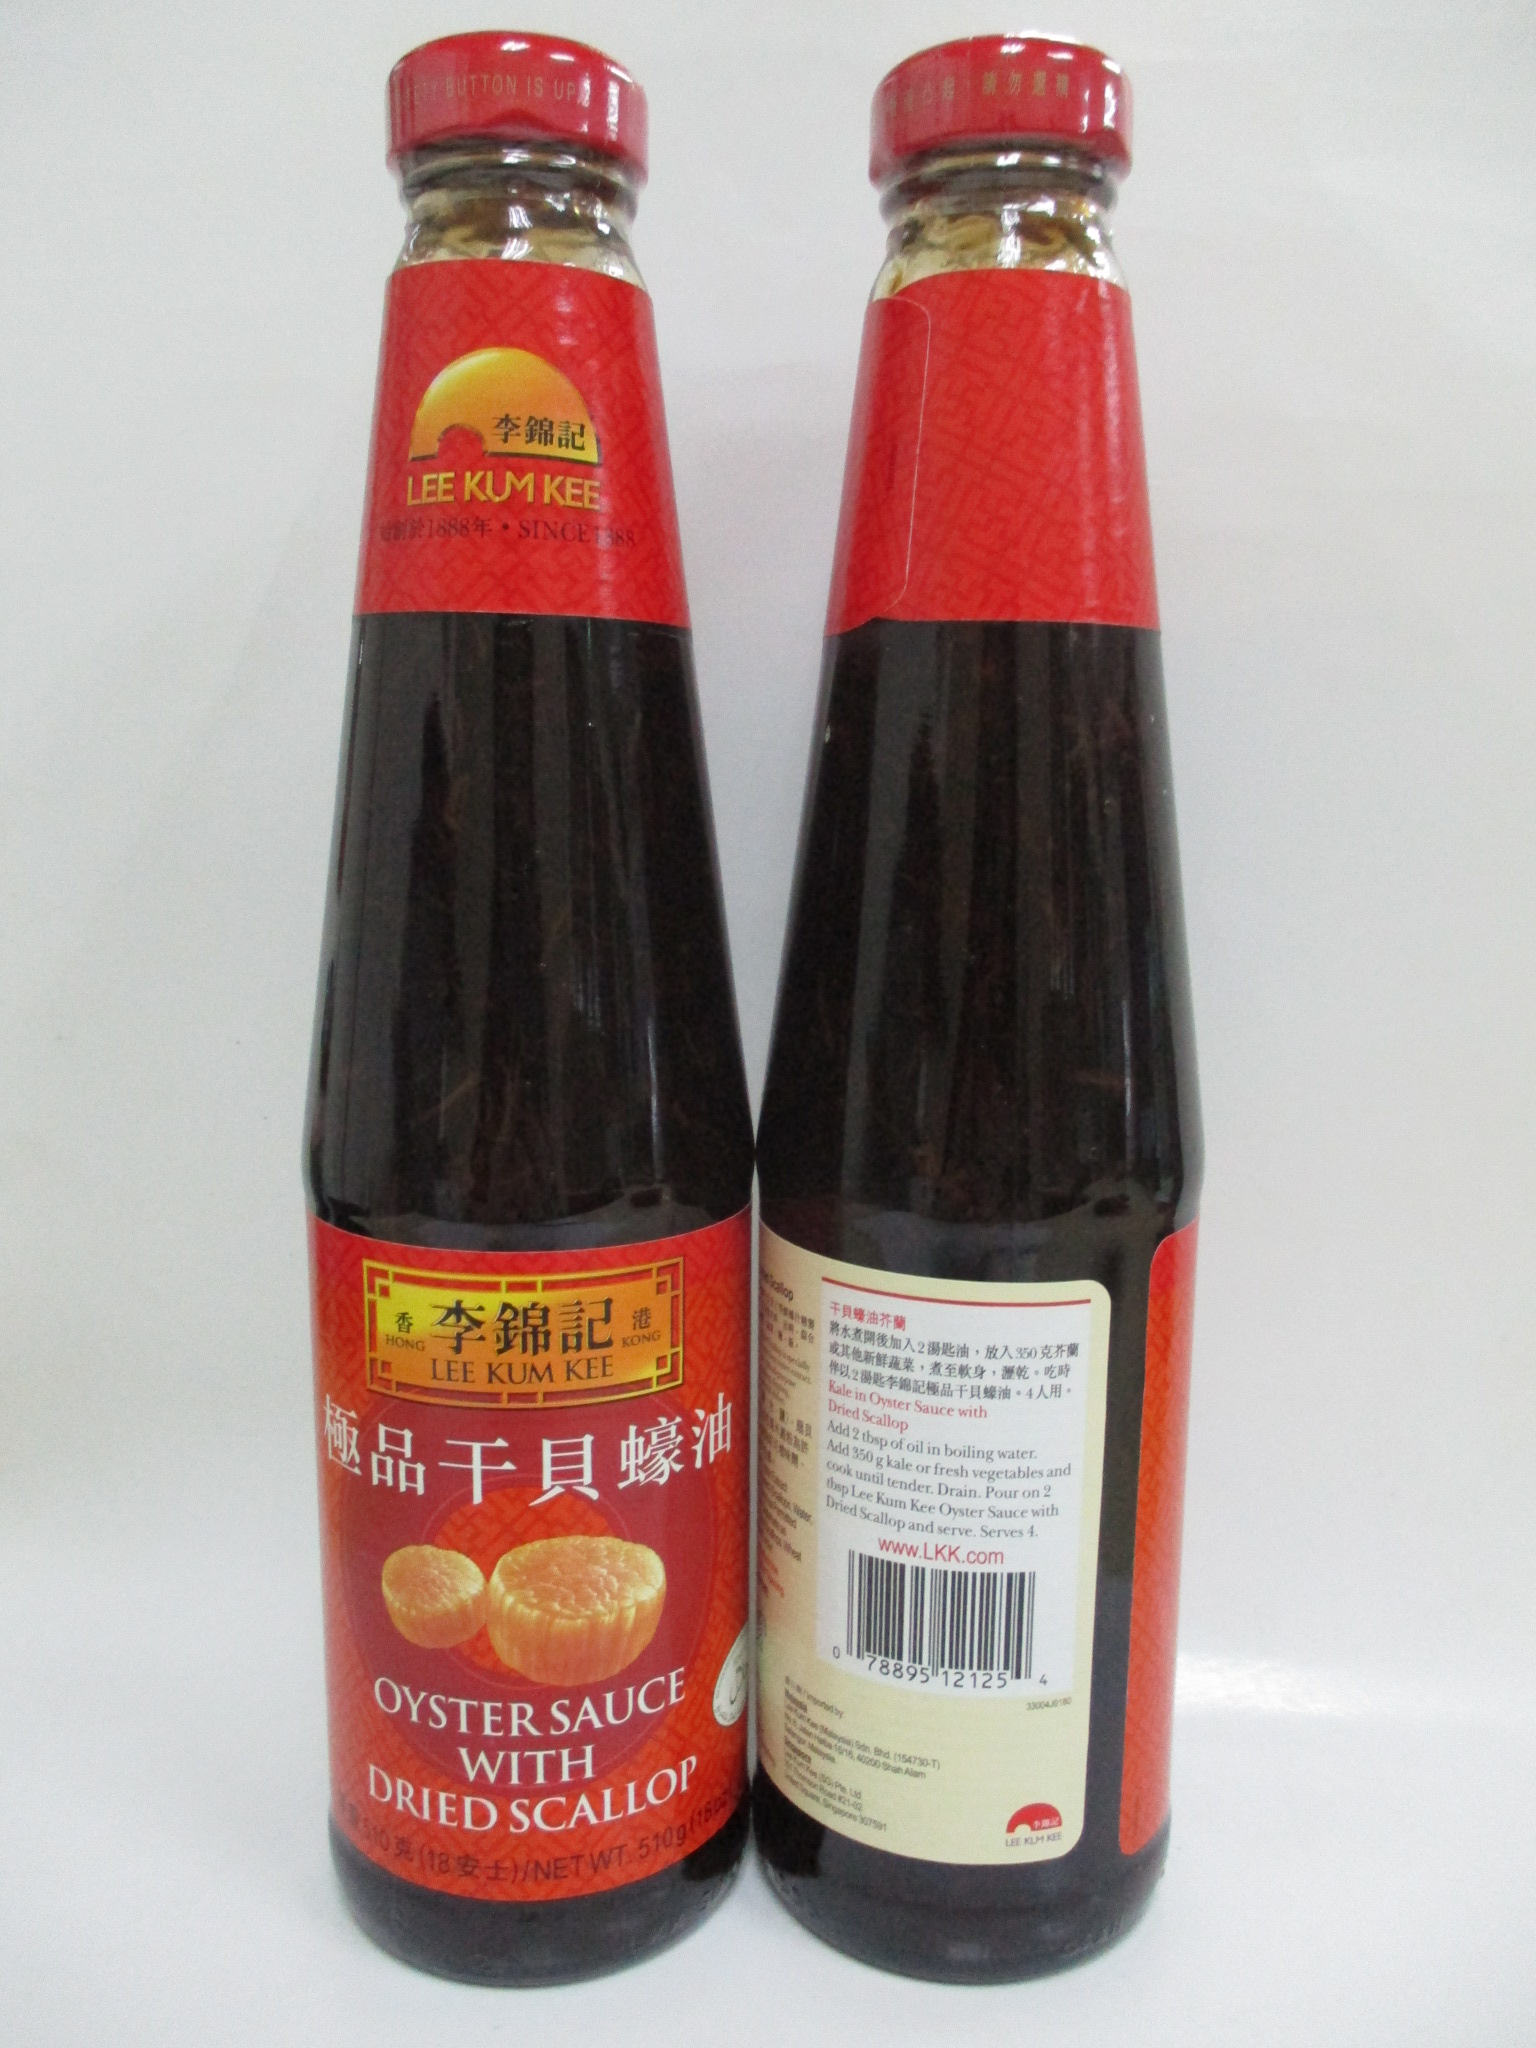 LKK Premium Oyster Sauce With Scallop